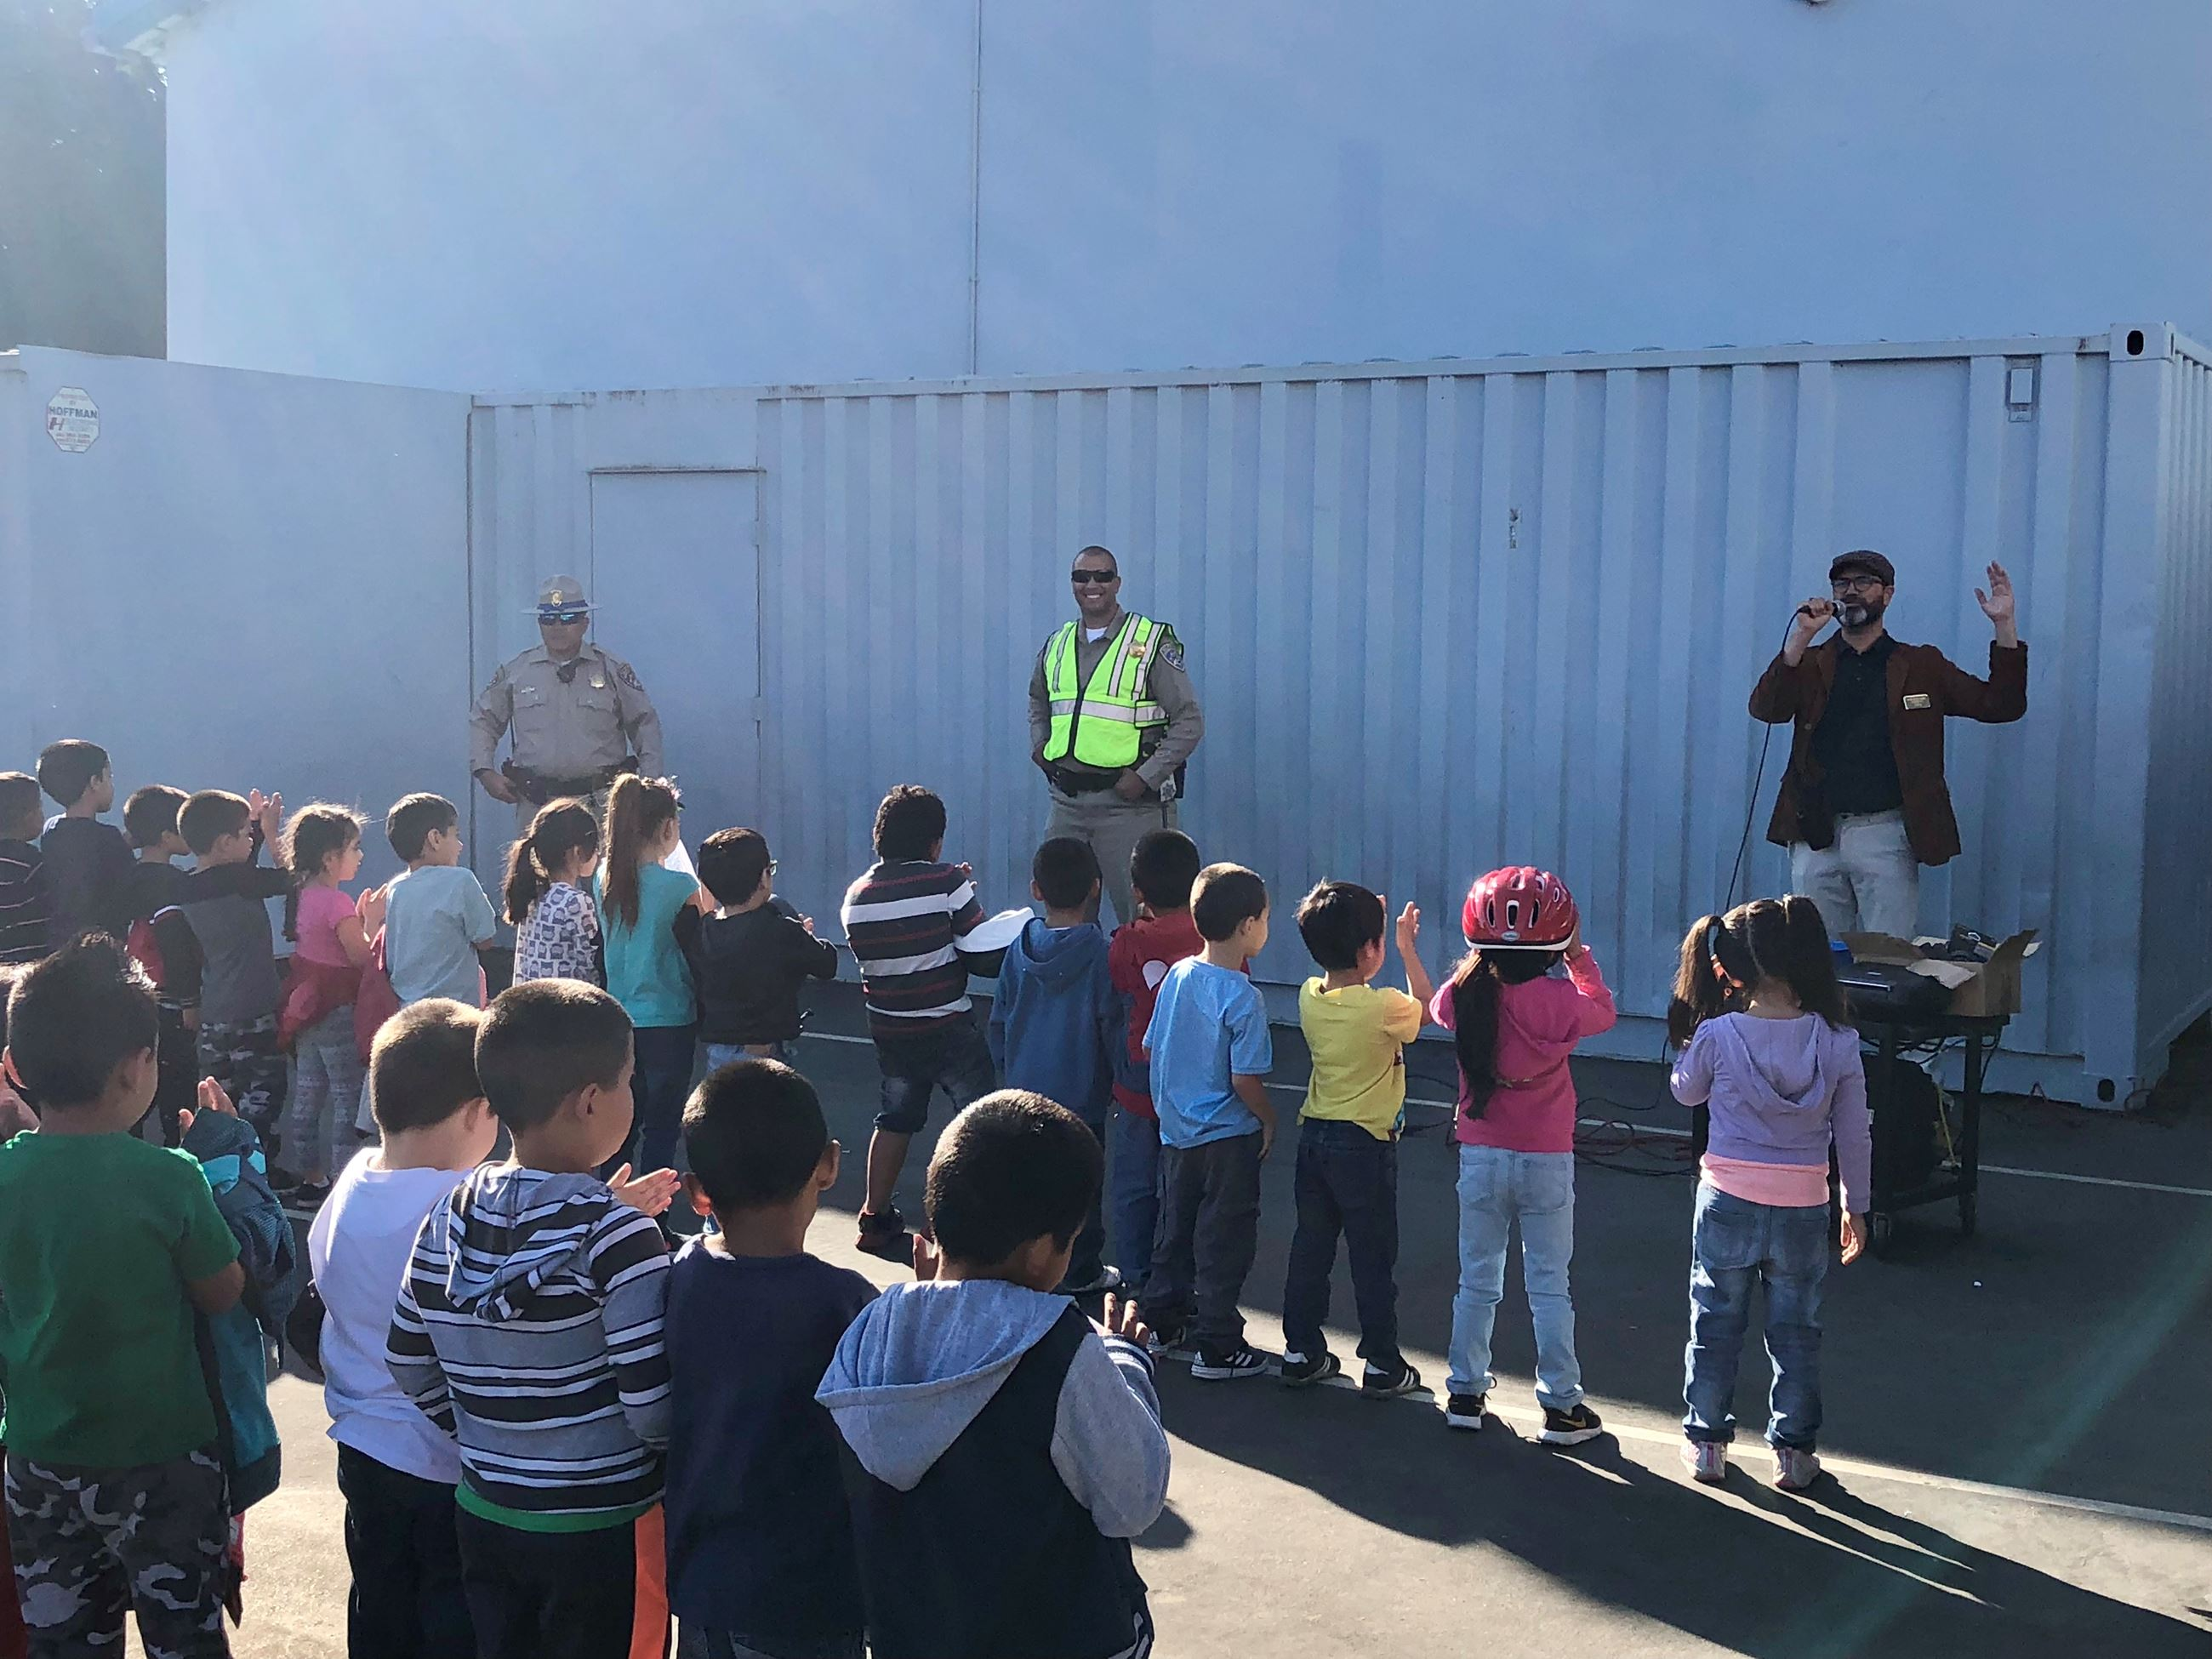 Officers Doing Safety Training with Group of Children